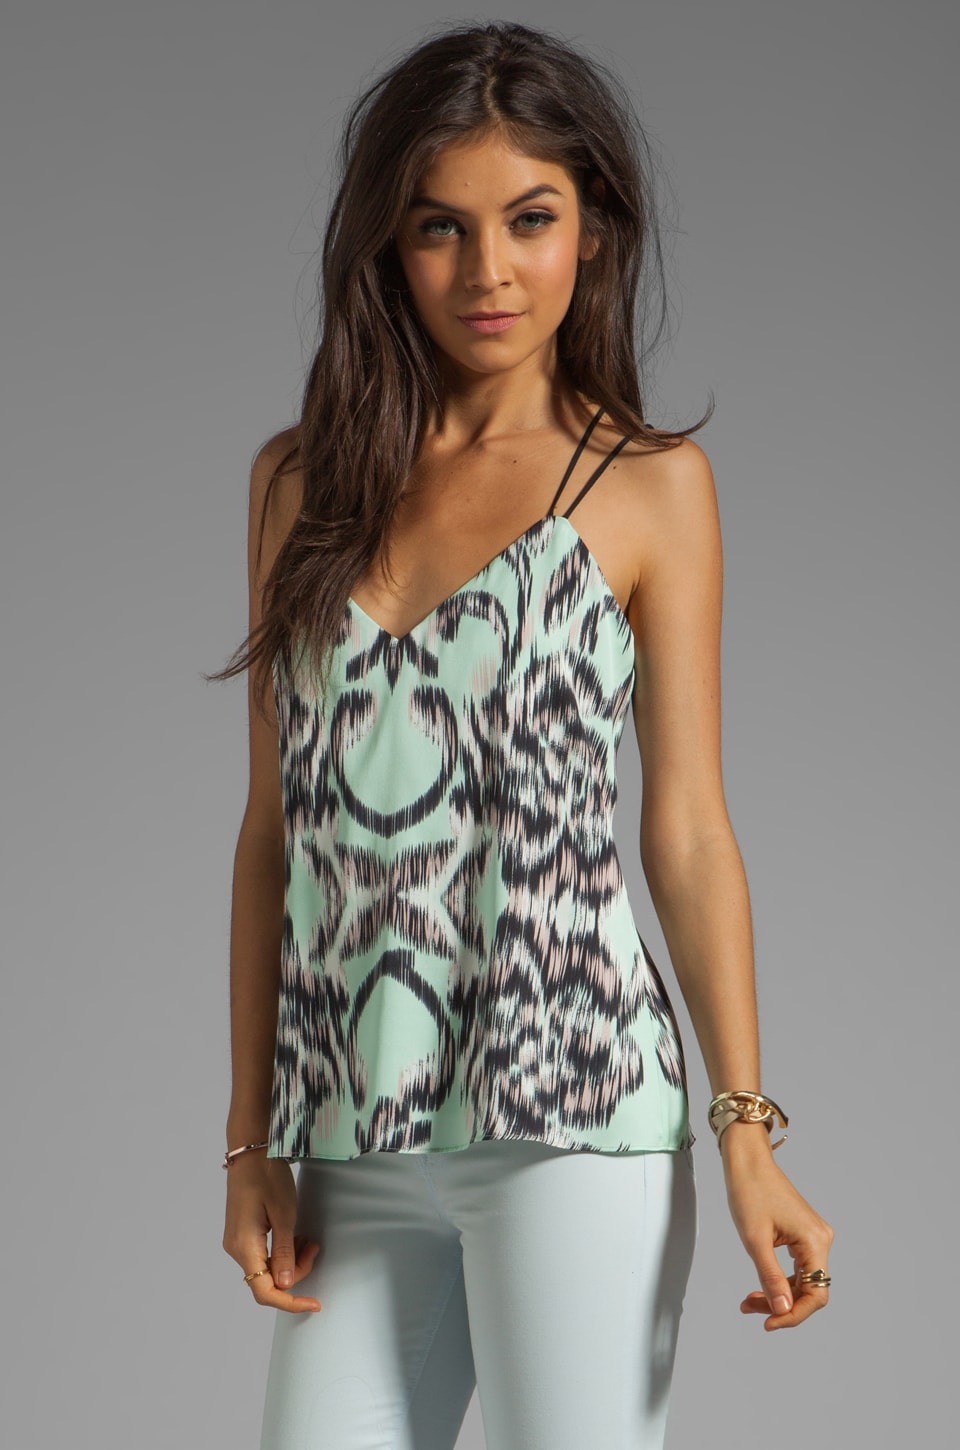 MILLY Digital Ikat Print on Matte Silk V Double Strap Top in Seaglass